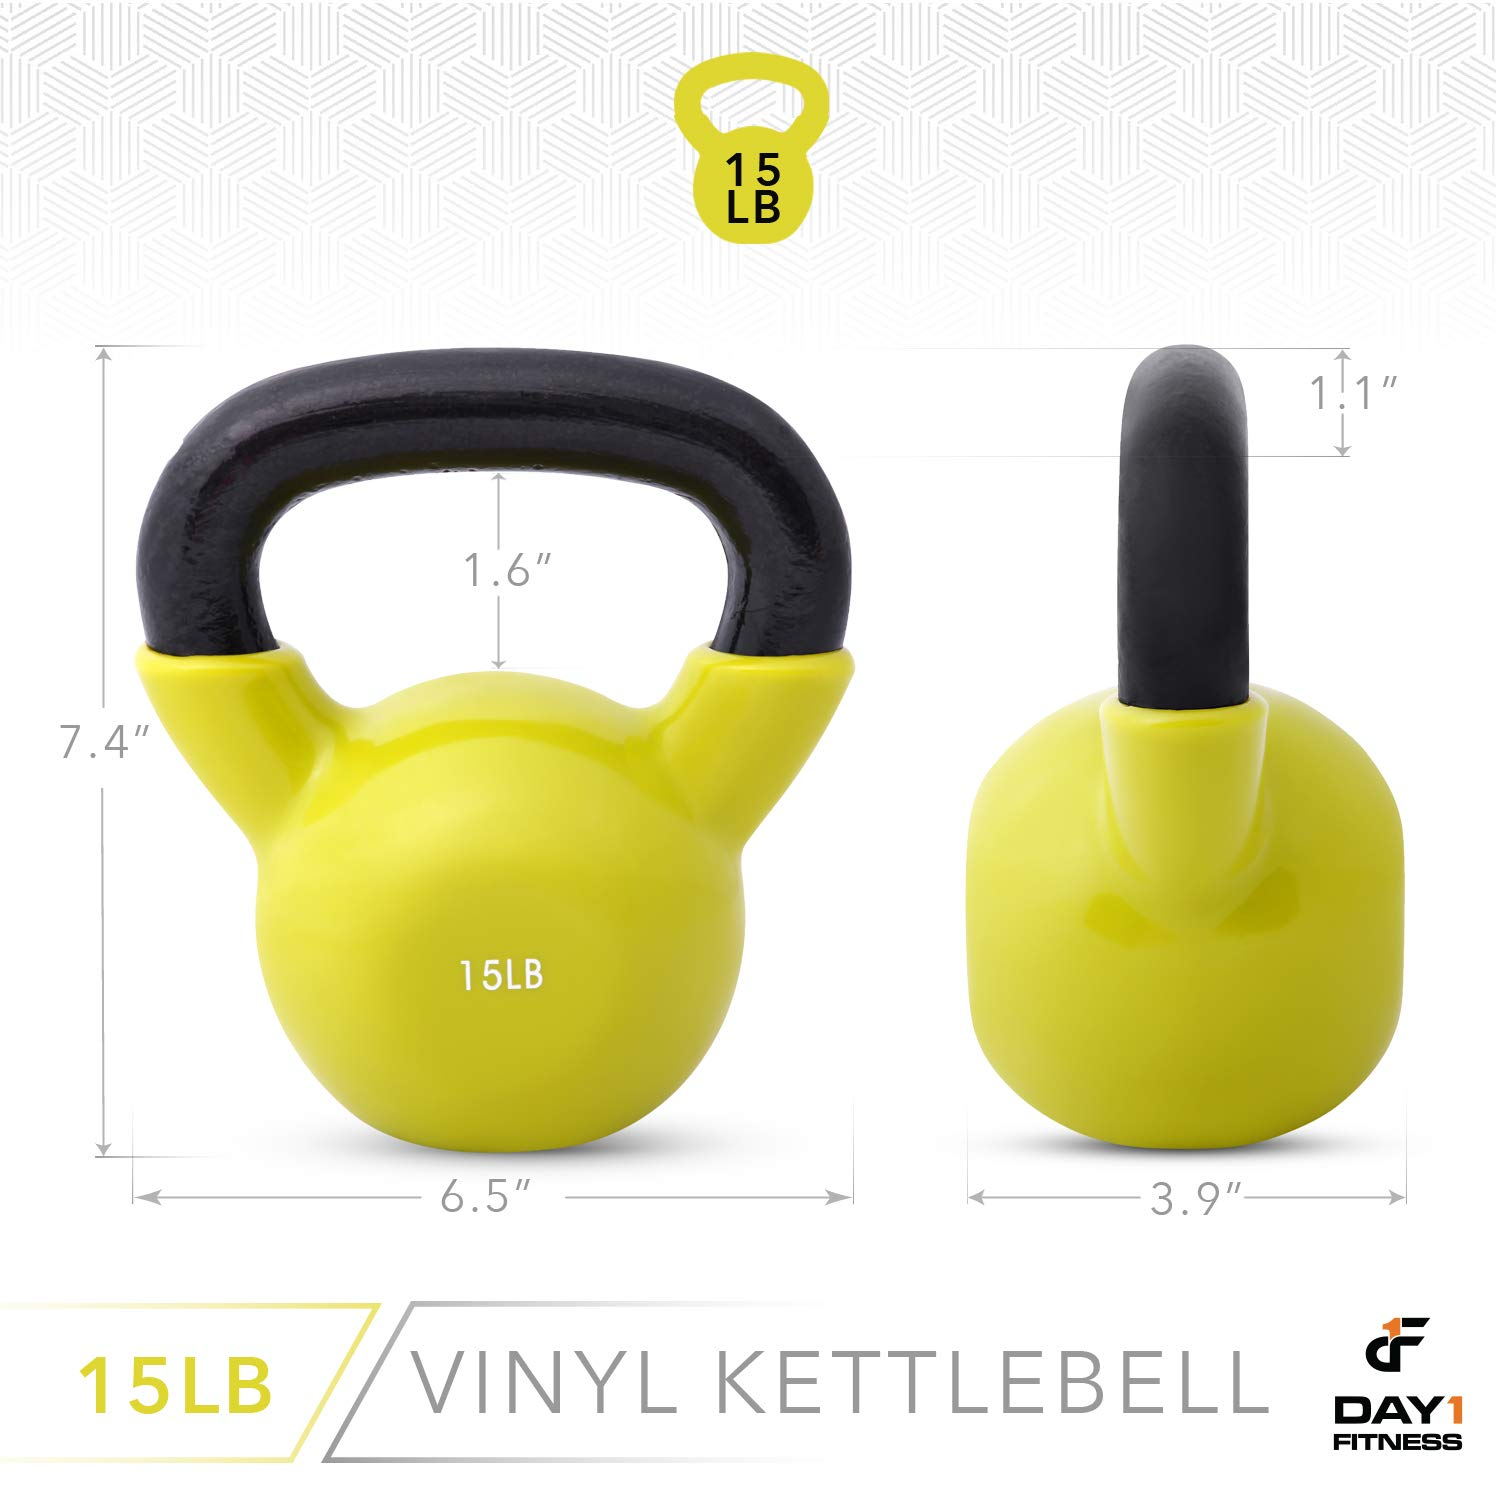 Day 1 Fitness Kettlebell Weights Vinyl Coated Iron 15 Pounds - Coated for Floor and Equipment Protection, Noise Reduction - Free Weights for Ballistic, Core, Weight Training by Day 1 Fitness (Image #3)